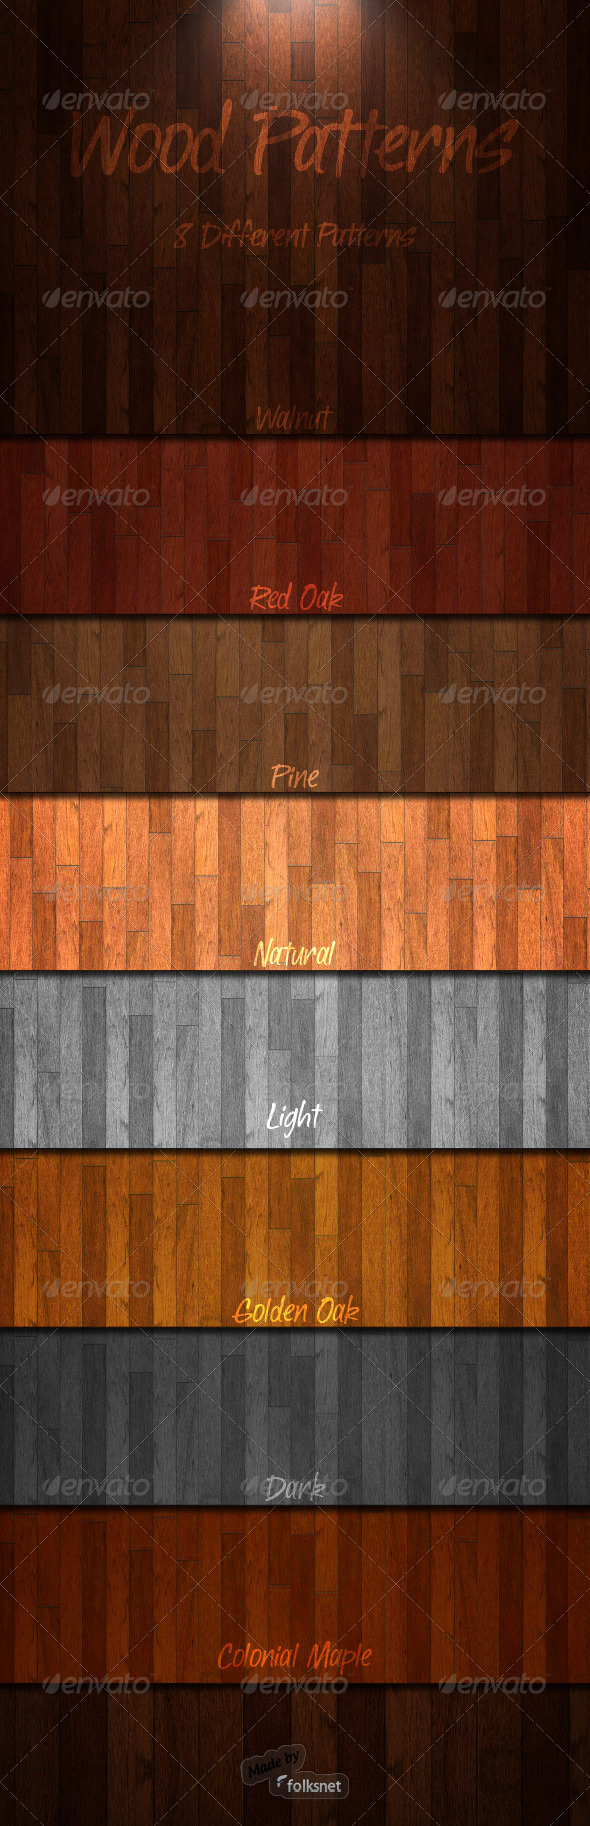 Graphic River Wood Patterns 1.0 Add-ons -  Photoshop  - / Fills / Patterns 803883